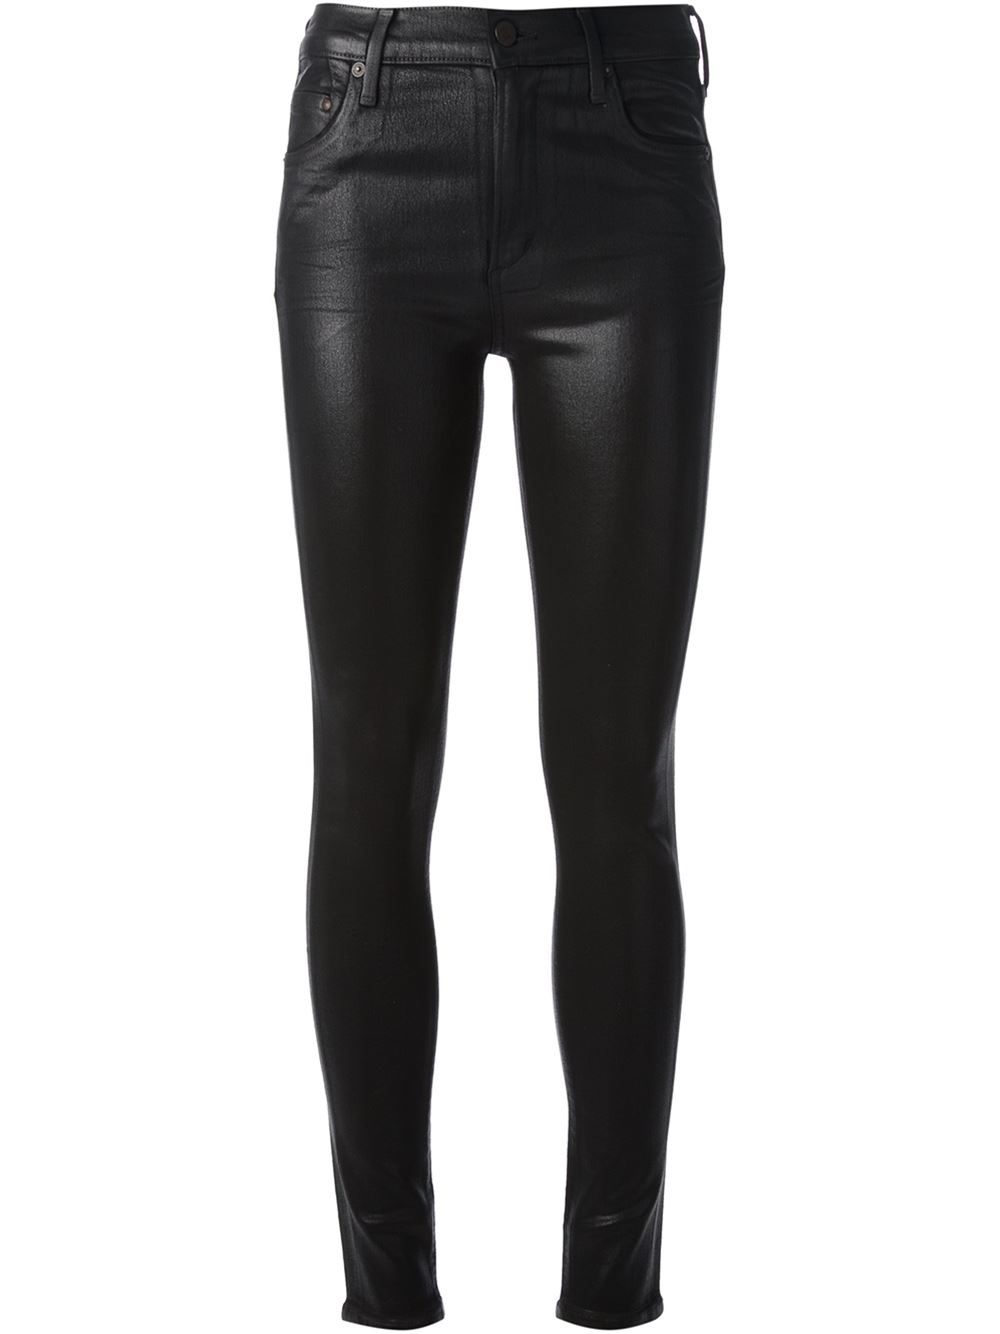 Shiny black jeans by Saint Laurent with a skinny fit. Part of the Fall/Winter collection.